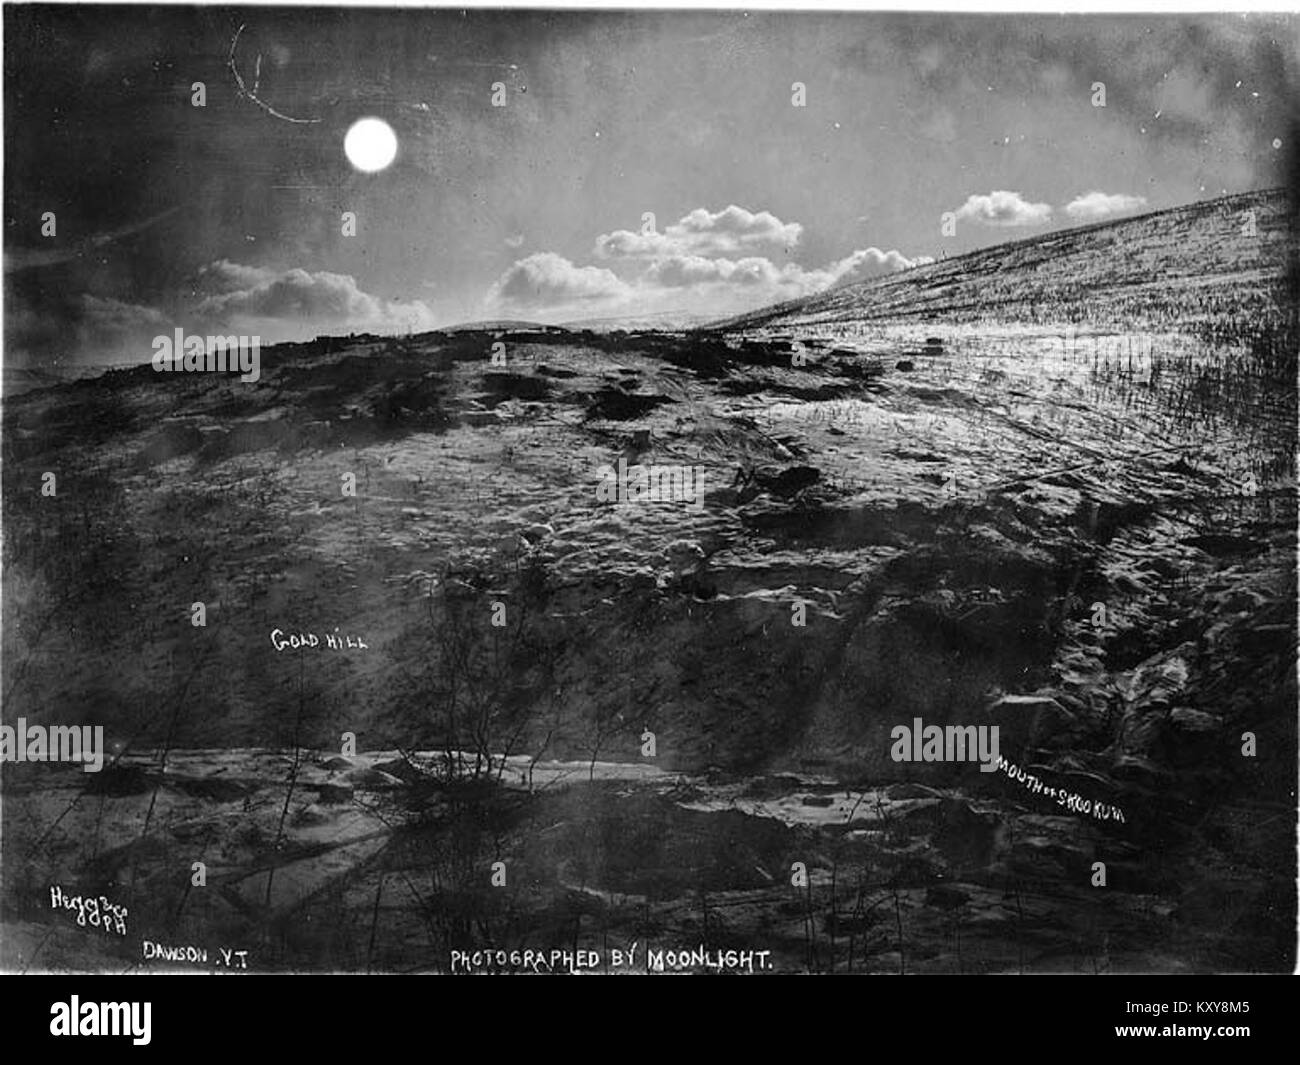 Gold Hill and mouth of Skookum Creek photographed by moonlight, Yukon Territory, ca 1898 (HEGG 354) - Stock Image